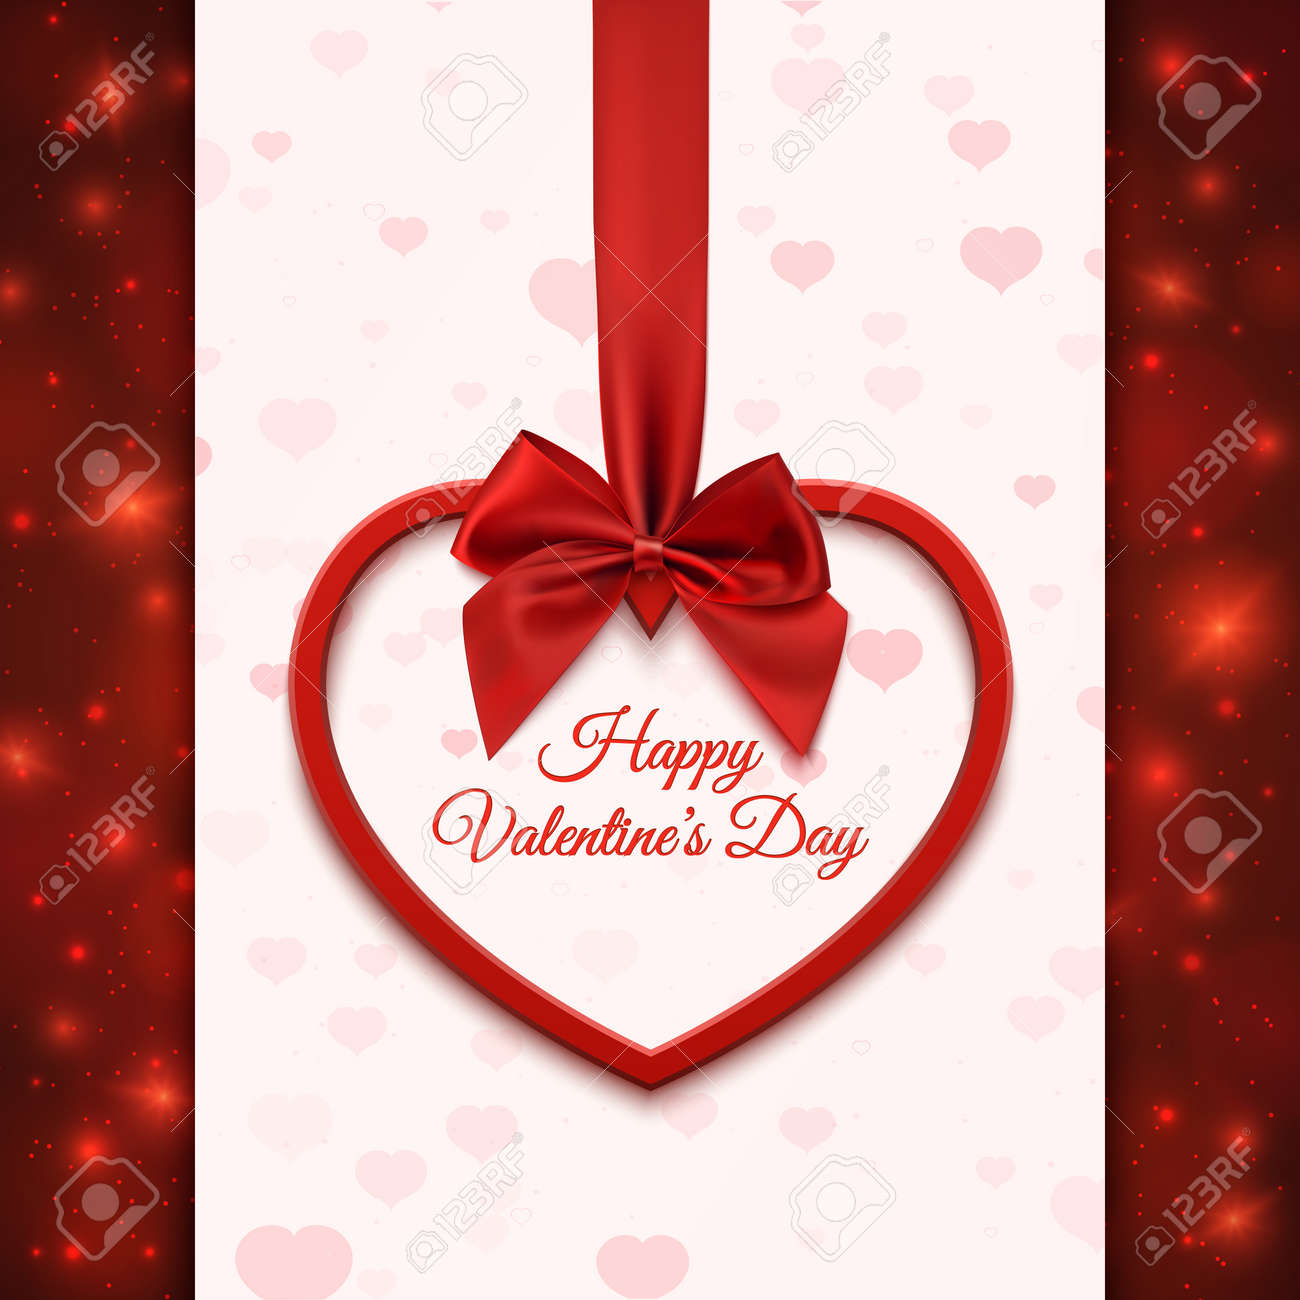 photo stock vector happy valentines day greeting card template red heart with red ribbon and bow on abstract background